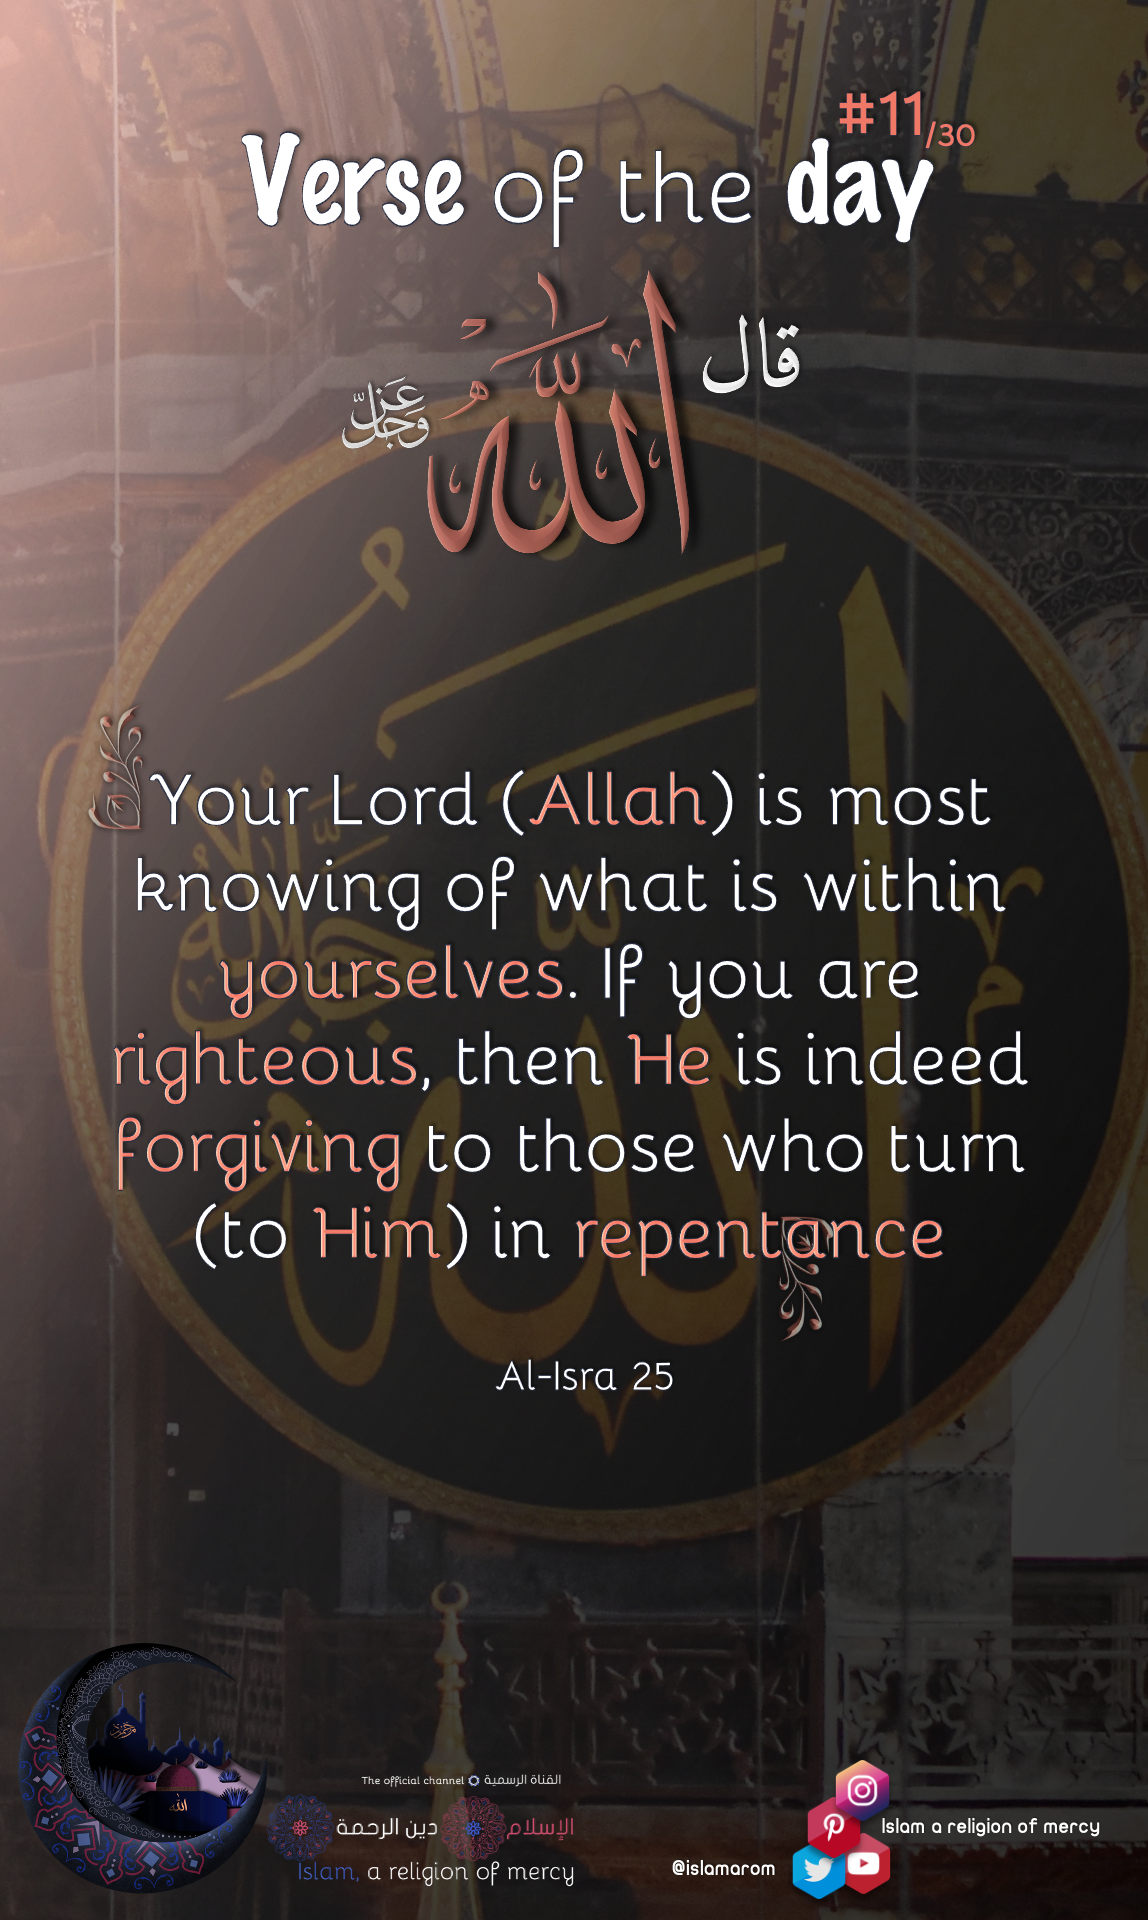 11 Verse Of The Day From Quran Ramadan 1441 Verse Of The Day Verse Humility